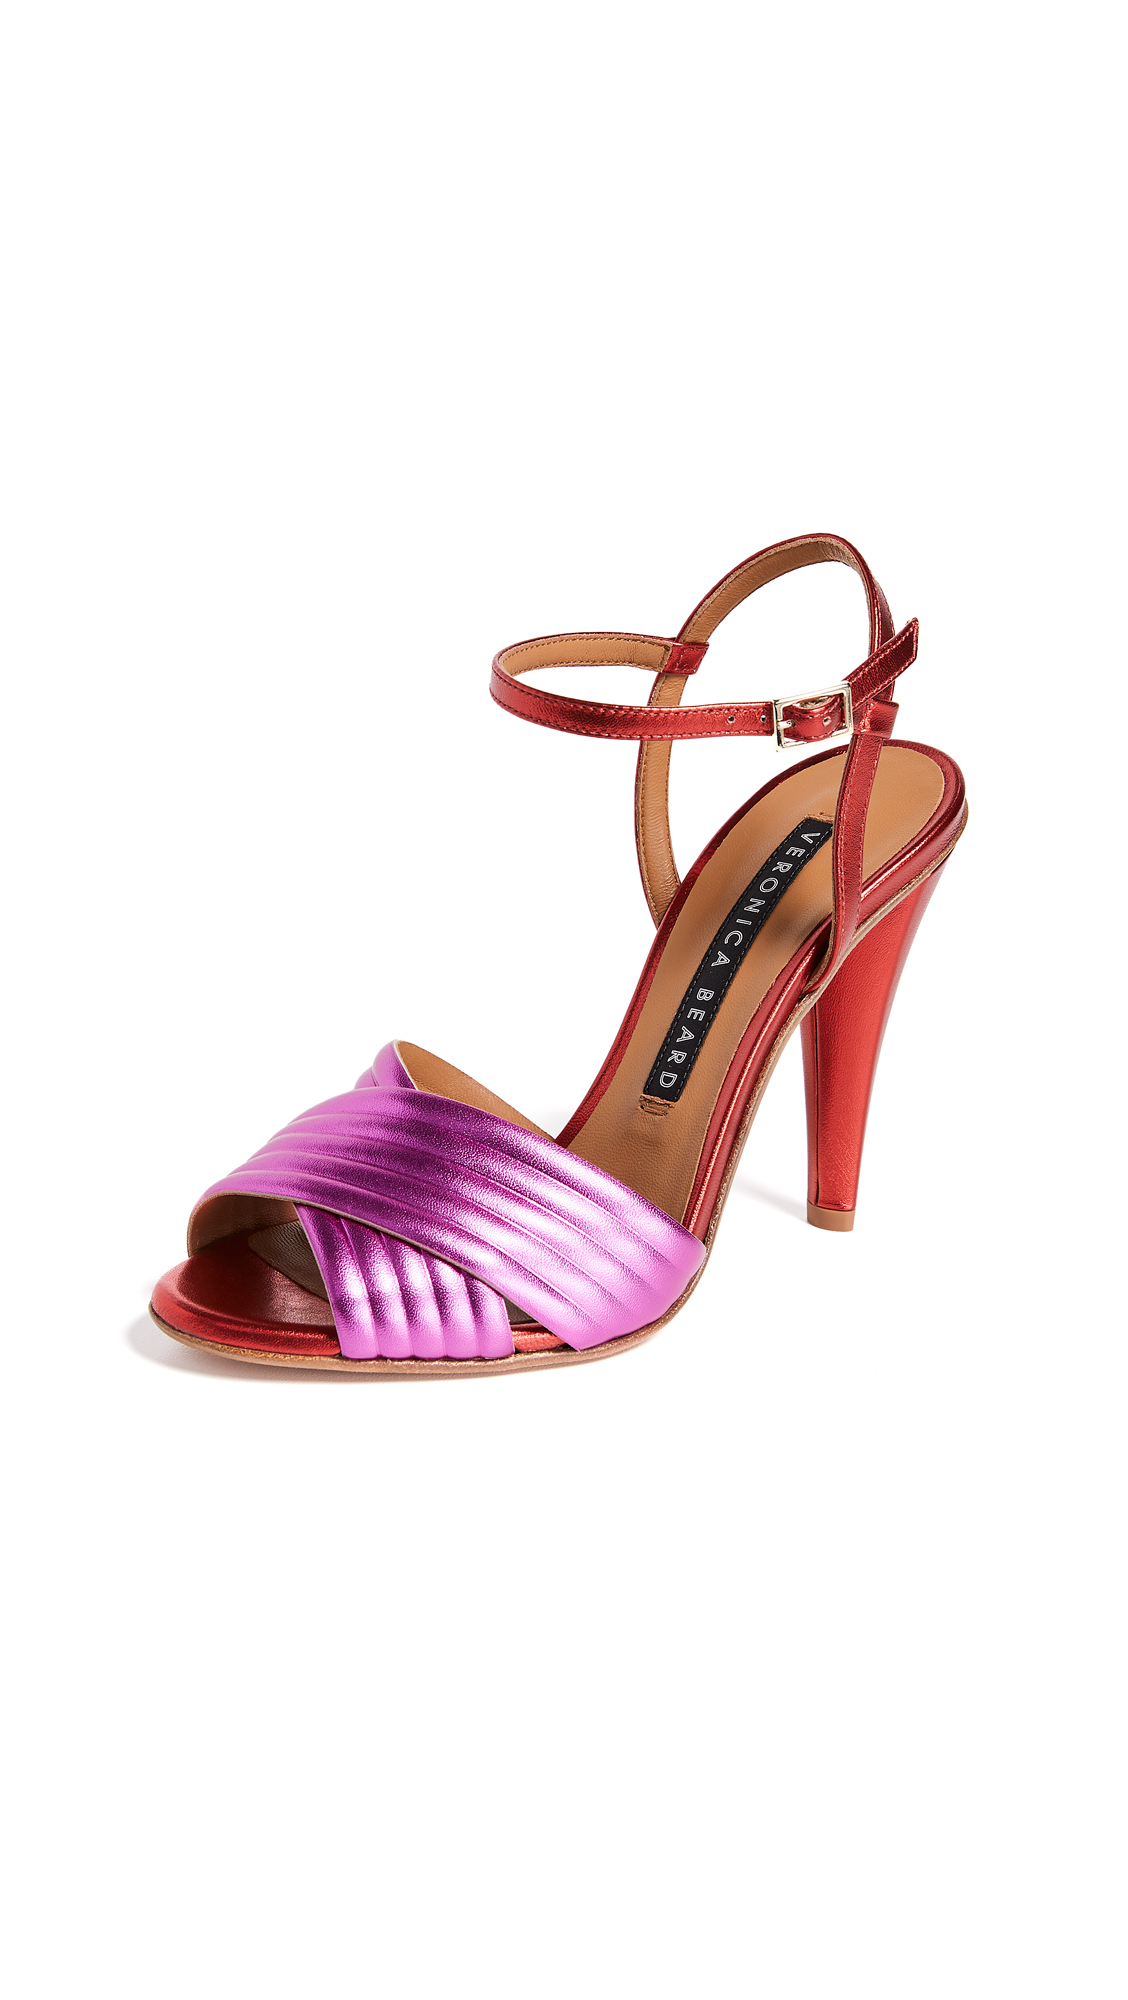 Veronica Beard Olympia Sandals - Pink/Red